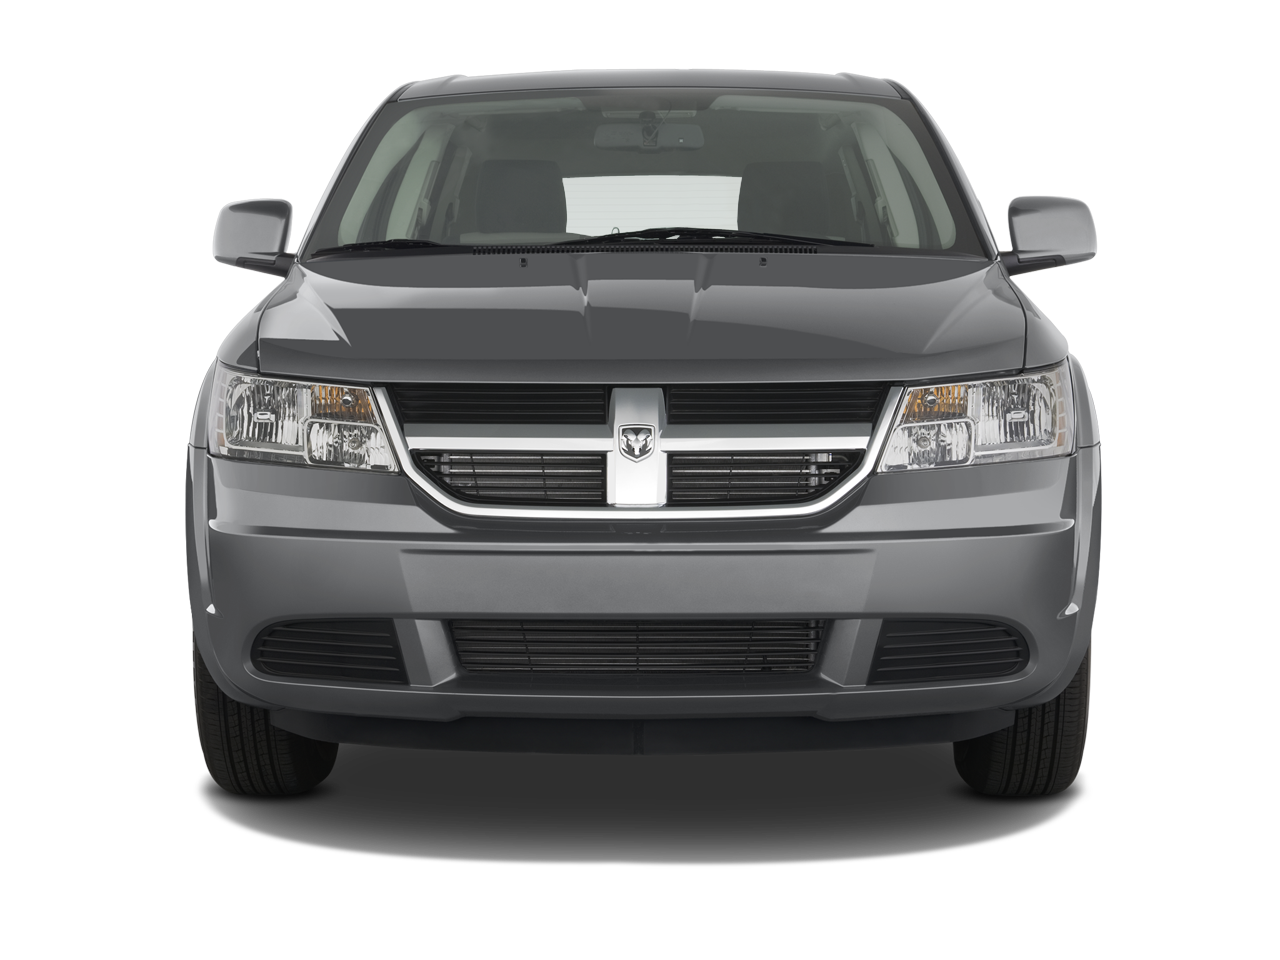 2009 dodge journey photo gallery photo galleries videos and multimedia features automobile. Black Bedroom Furniture Sets. Home Design Ideas